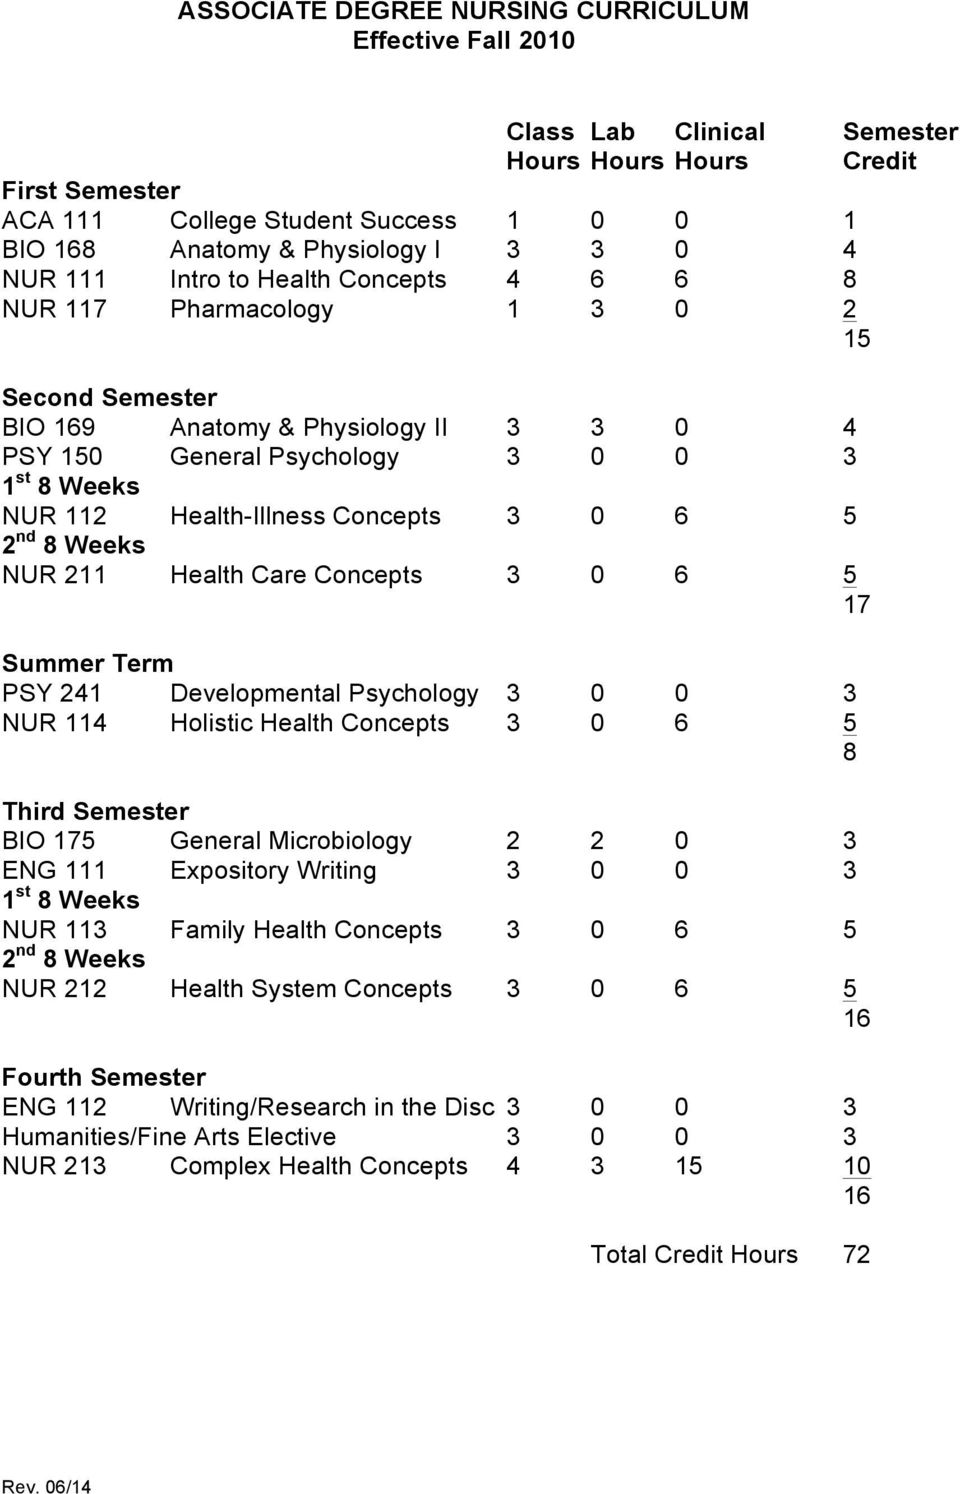 Health-Illness Concepts 3 0 6 5 2 nd 8 Weeks NUR 211 Health Care Concepts 3 0 6 5 17 Summer Term PSY 241 Developmental Psychology 3 0 0 3 NUR 114 Holistic Health Concepts 3 0 6 5 8 Third Semester BIO